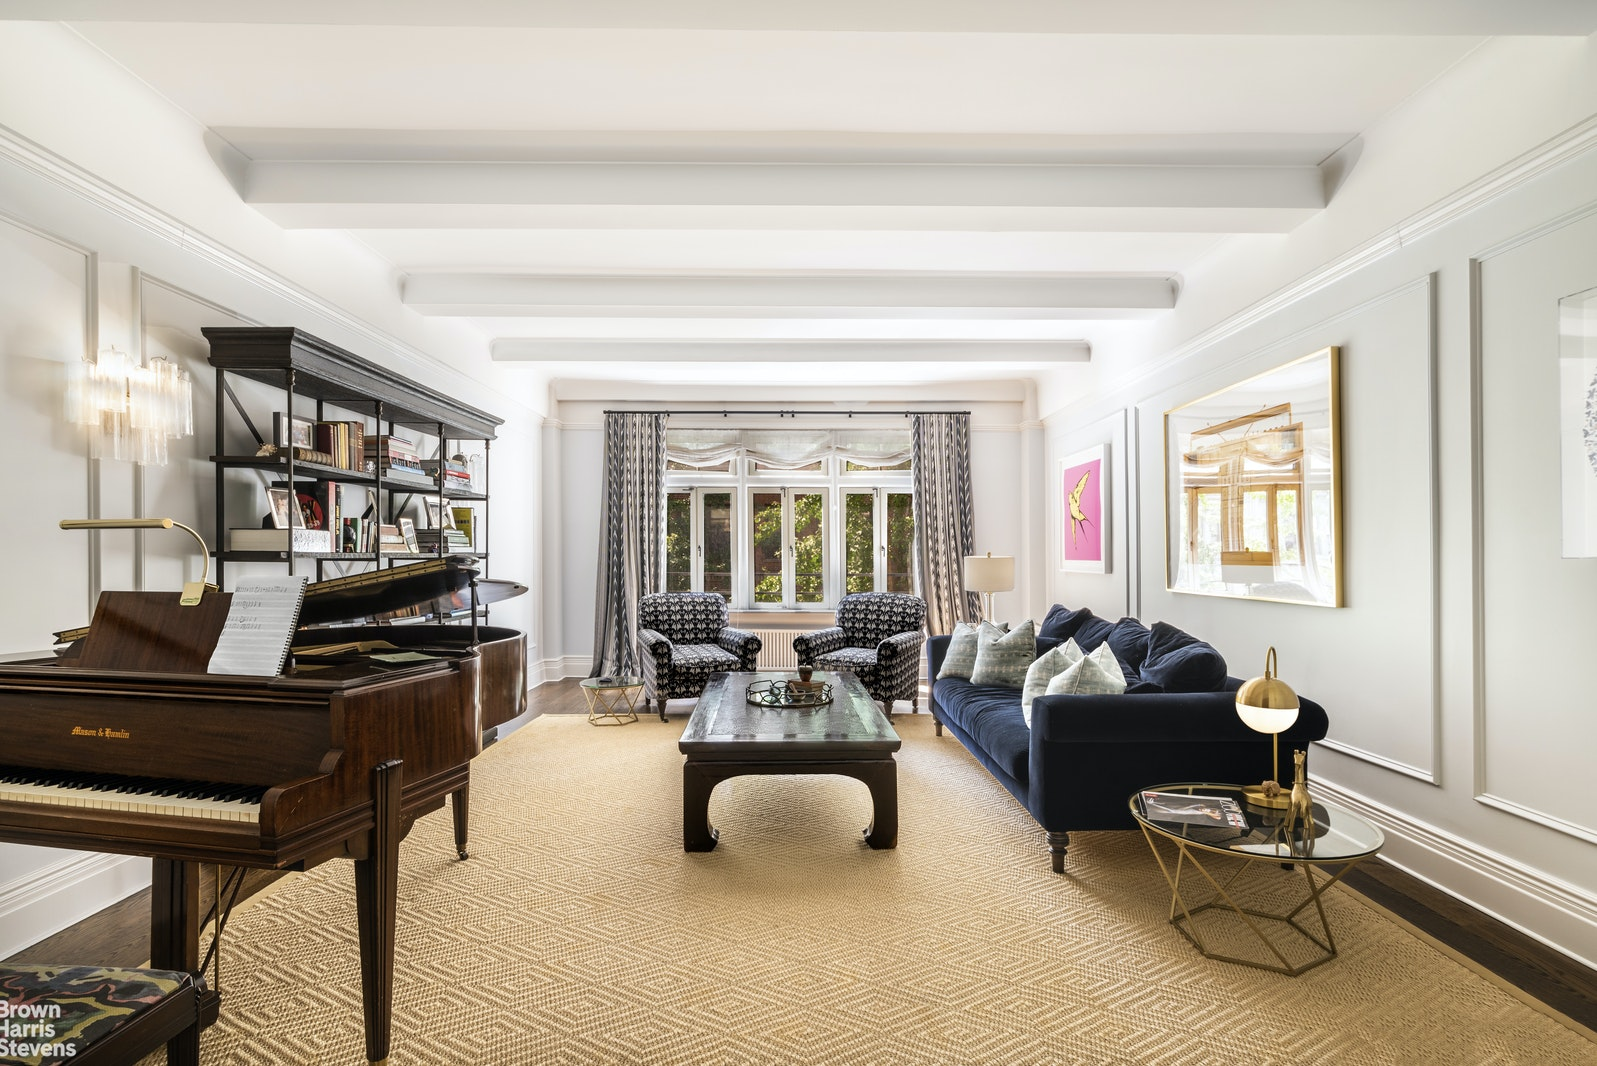 317 West 89th Street 4w, Upper West Side, NYC, 10024, $4,350,000, Property For Sale, Halstead Real Estate, Photo 3